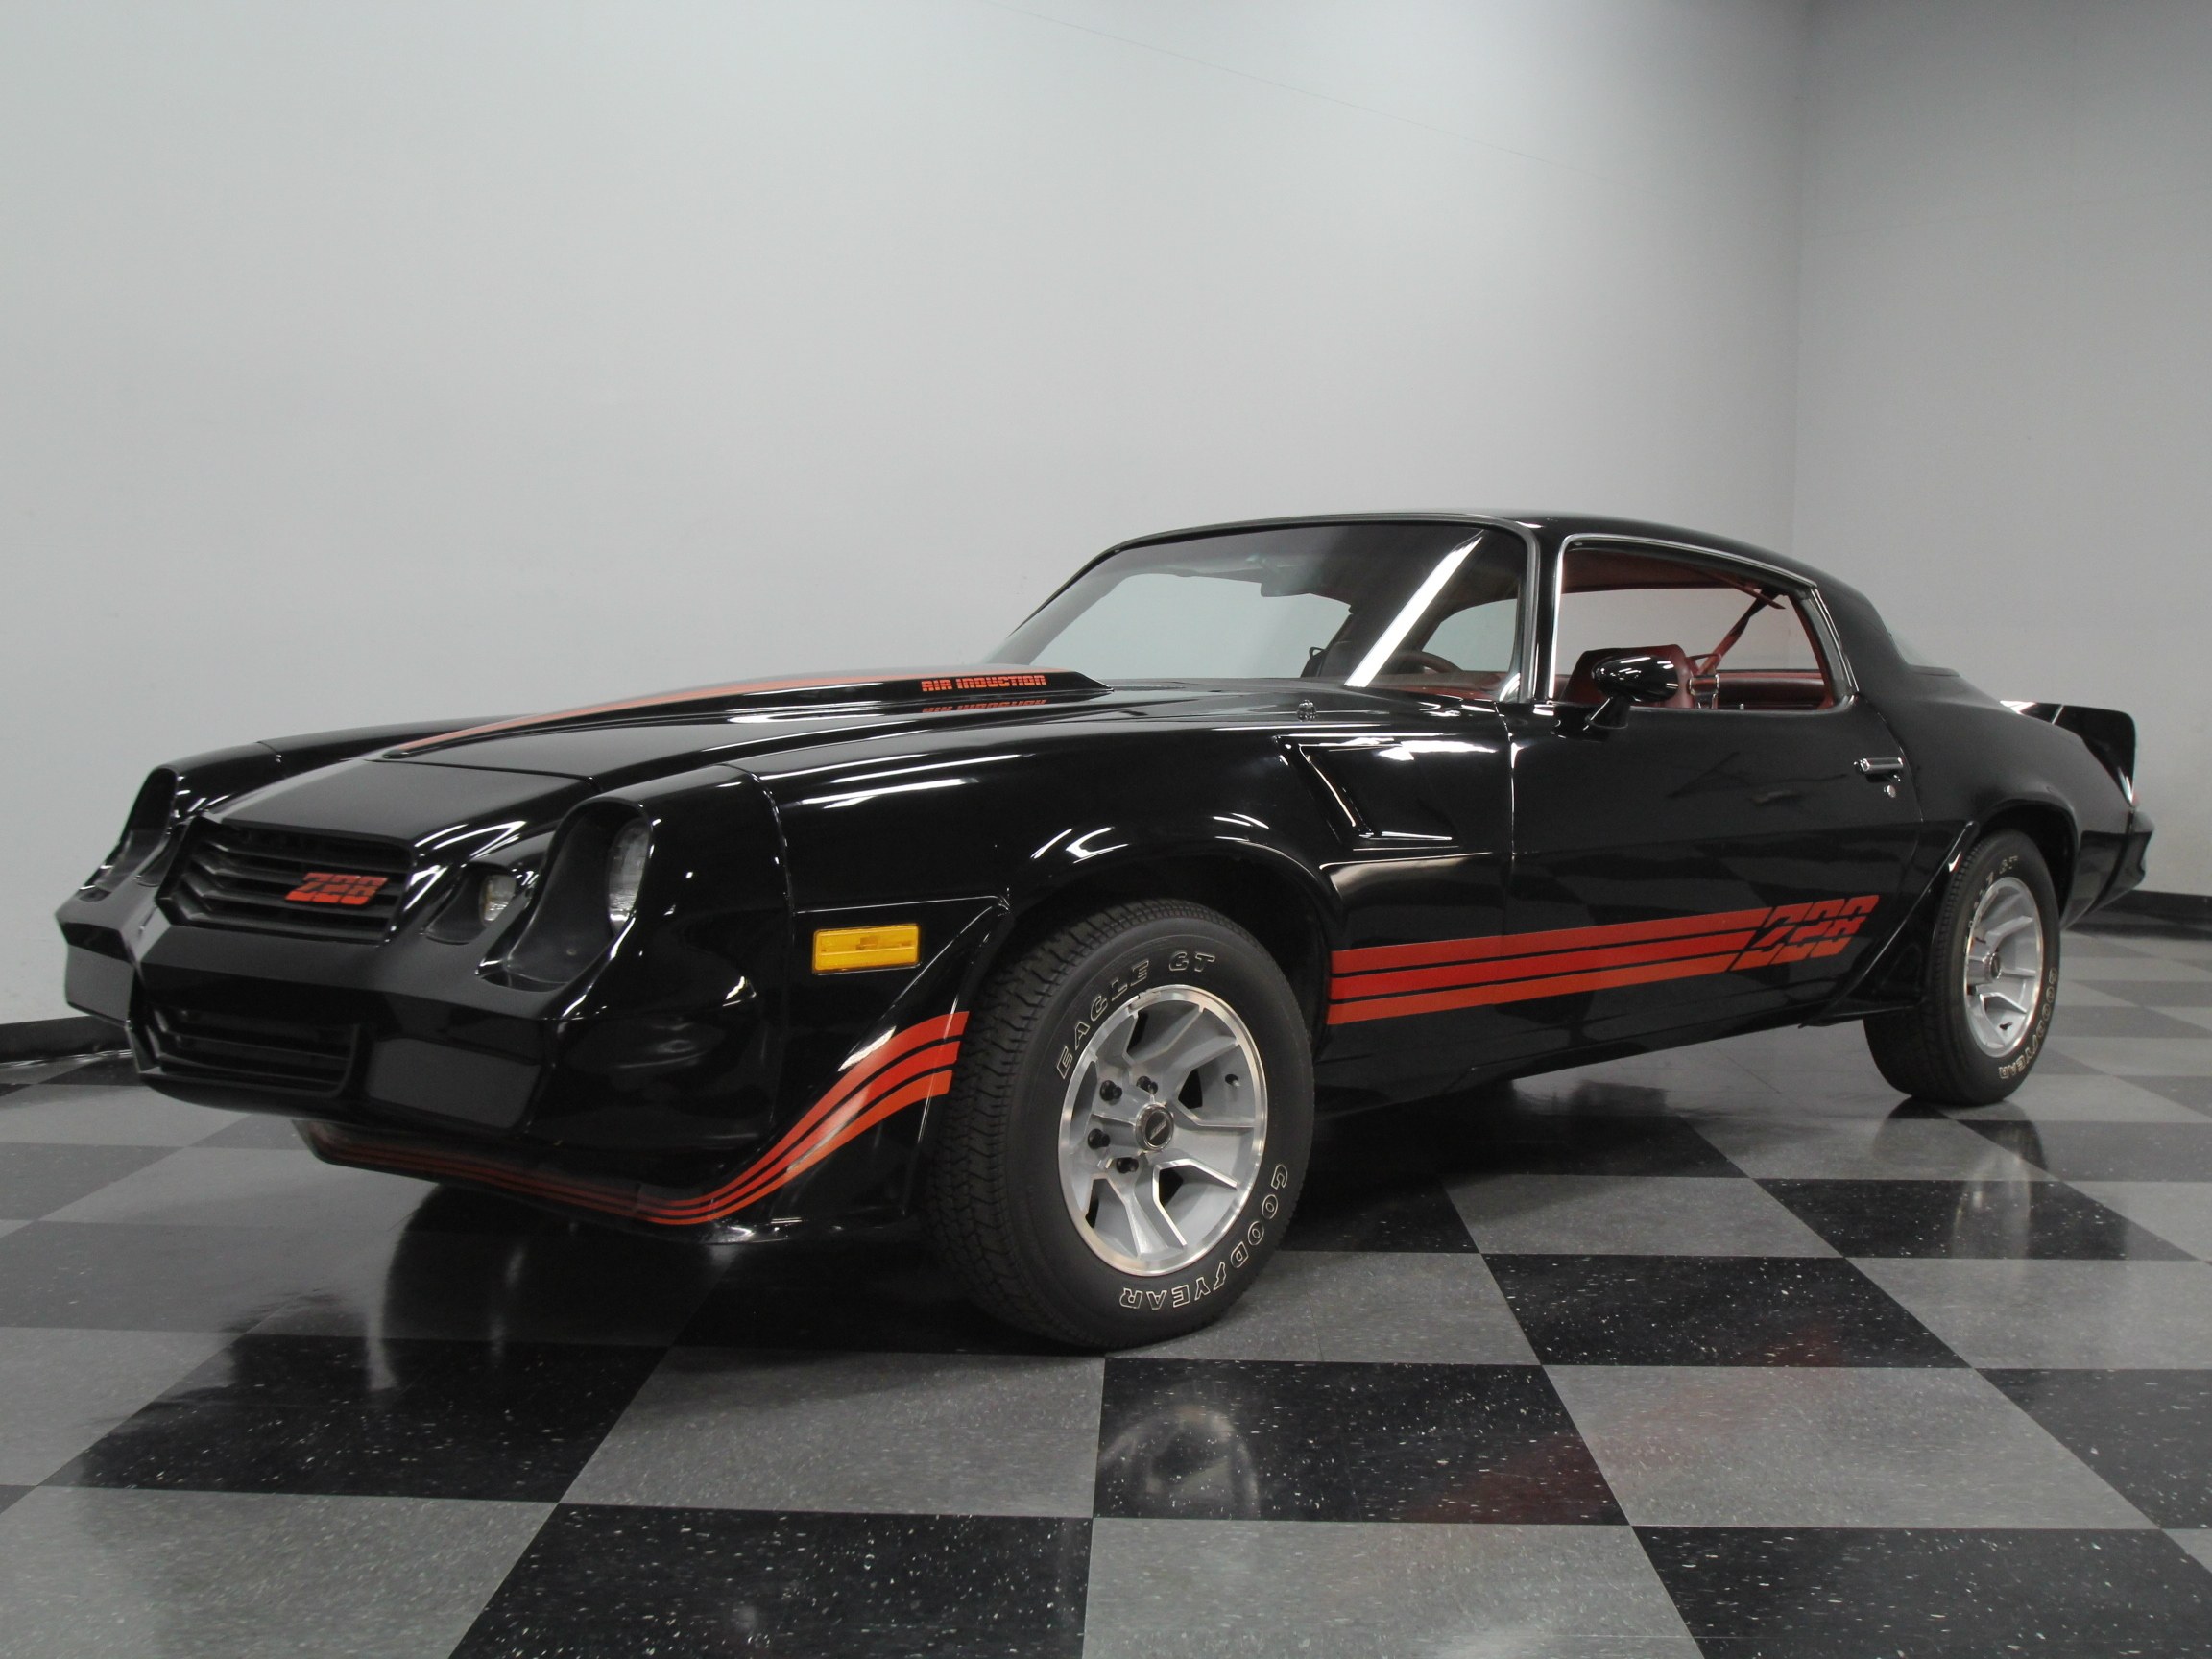 1980 Chevrolet Camaro Streetside Classics The Nation S Trusted Classic Car Consignment Dealer